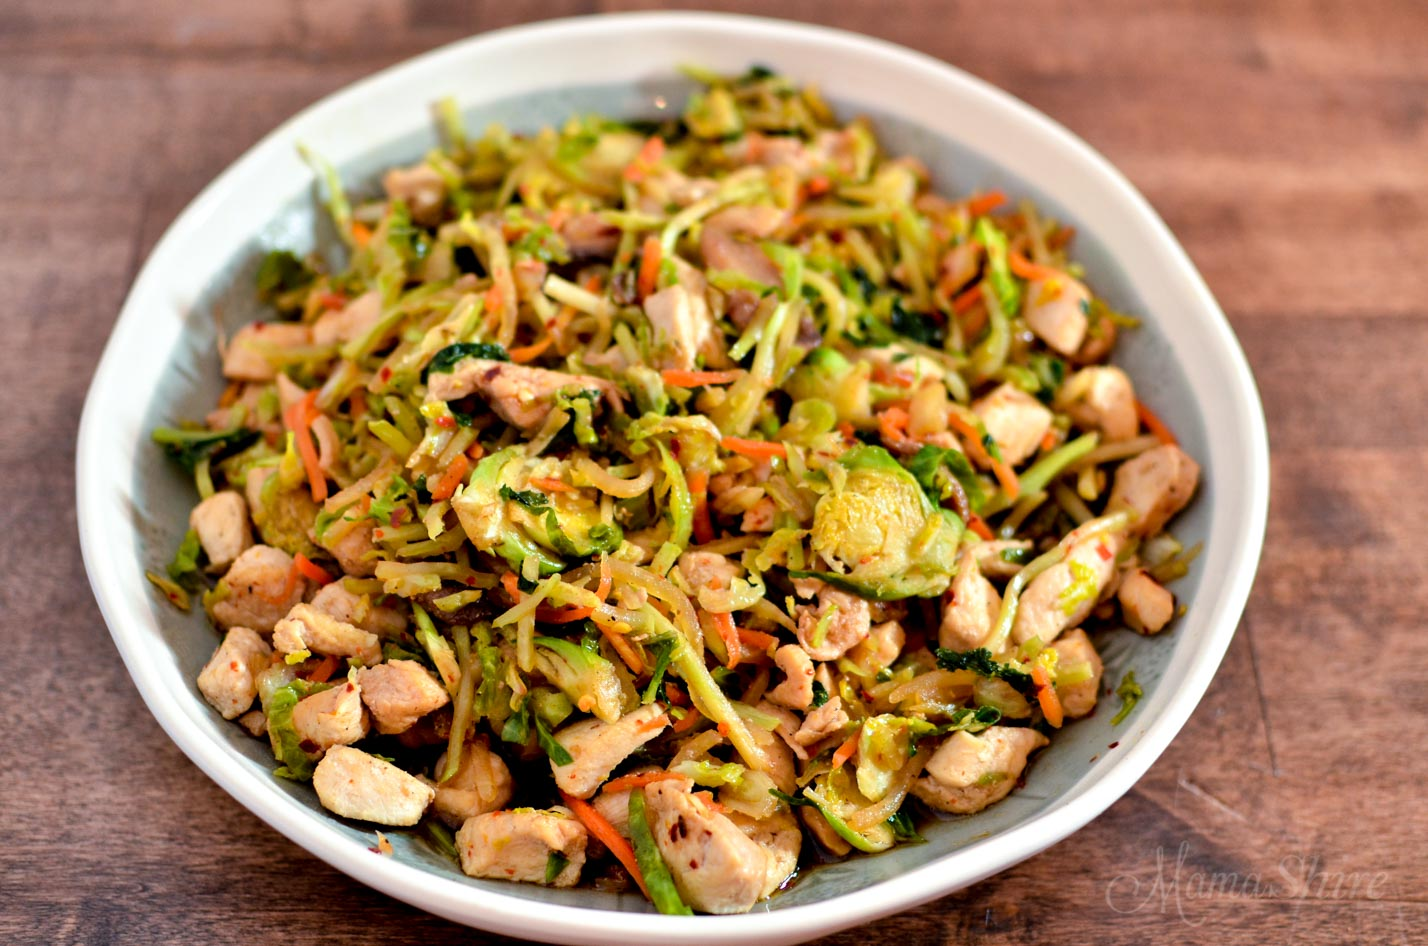 Easy Chicken Stir Fry with Brussels Sprouts